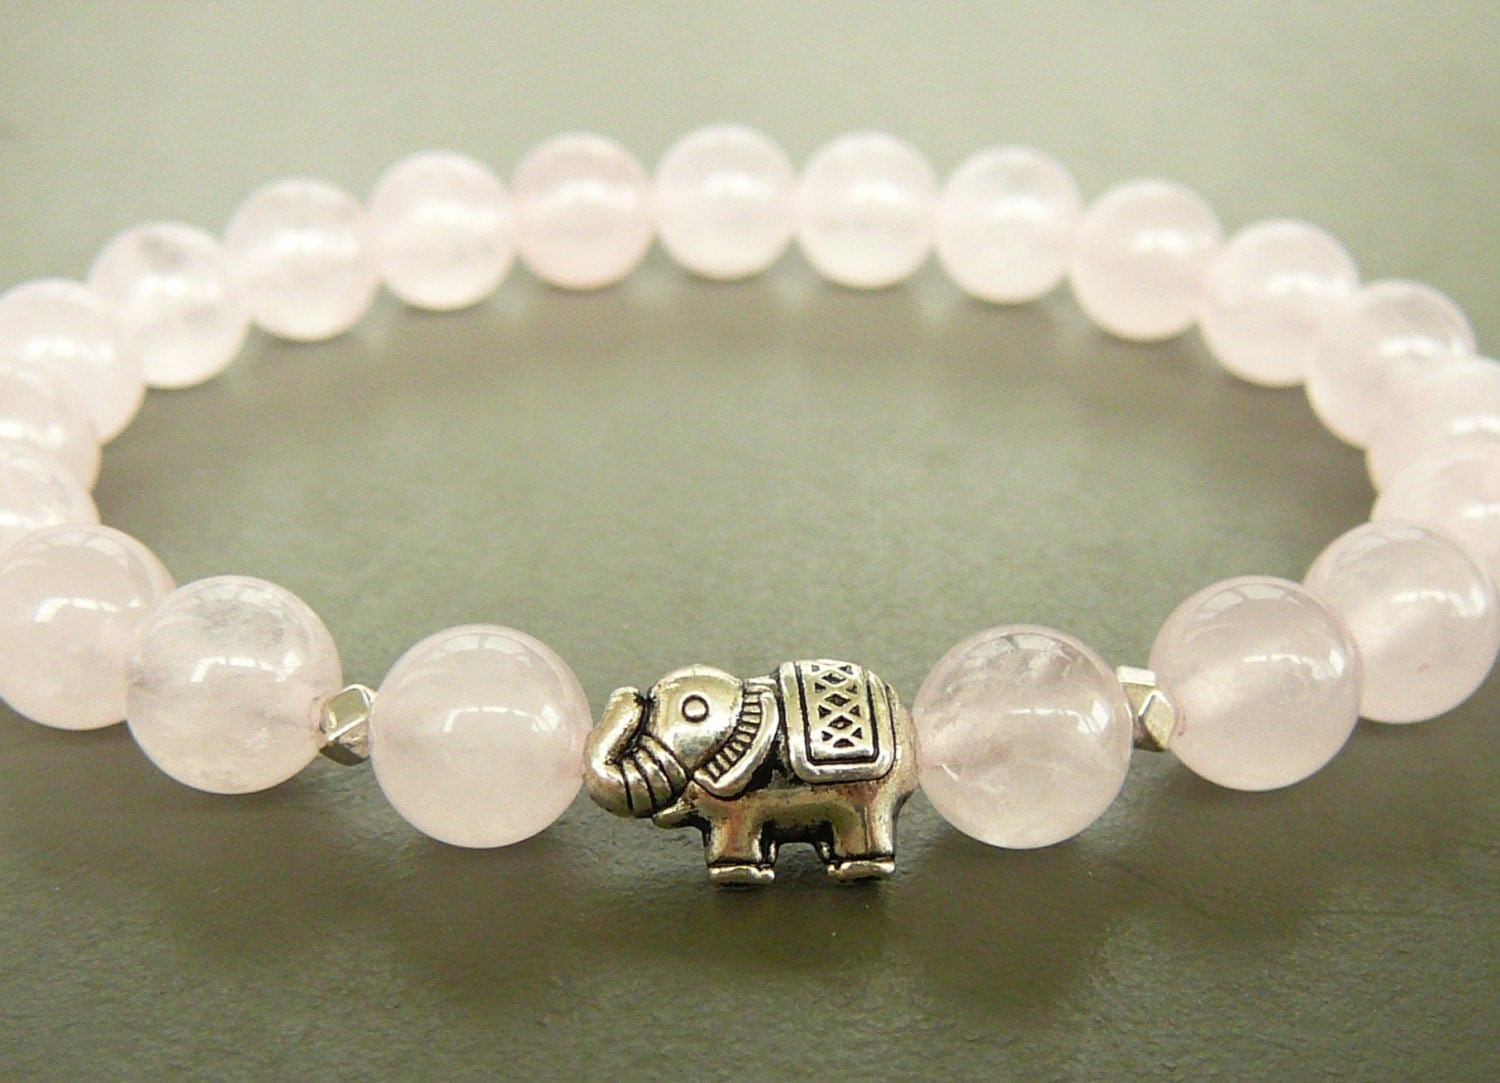 Is quartz considered a natural stone - Rose Quartz Bracelet Elephant Bracelet Women Beaded Bracelet Natural Rose Quartz Bracelet White Stretch Bracelet Natural Stones